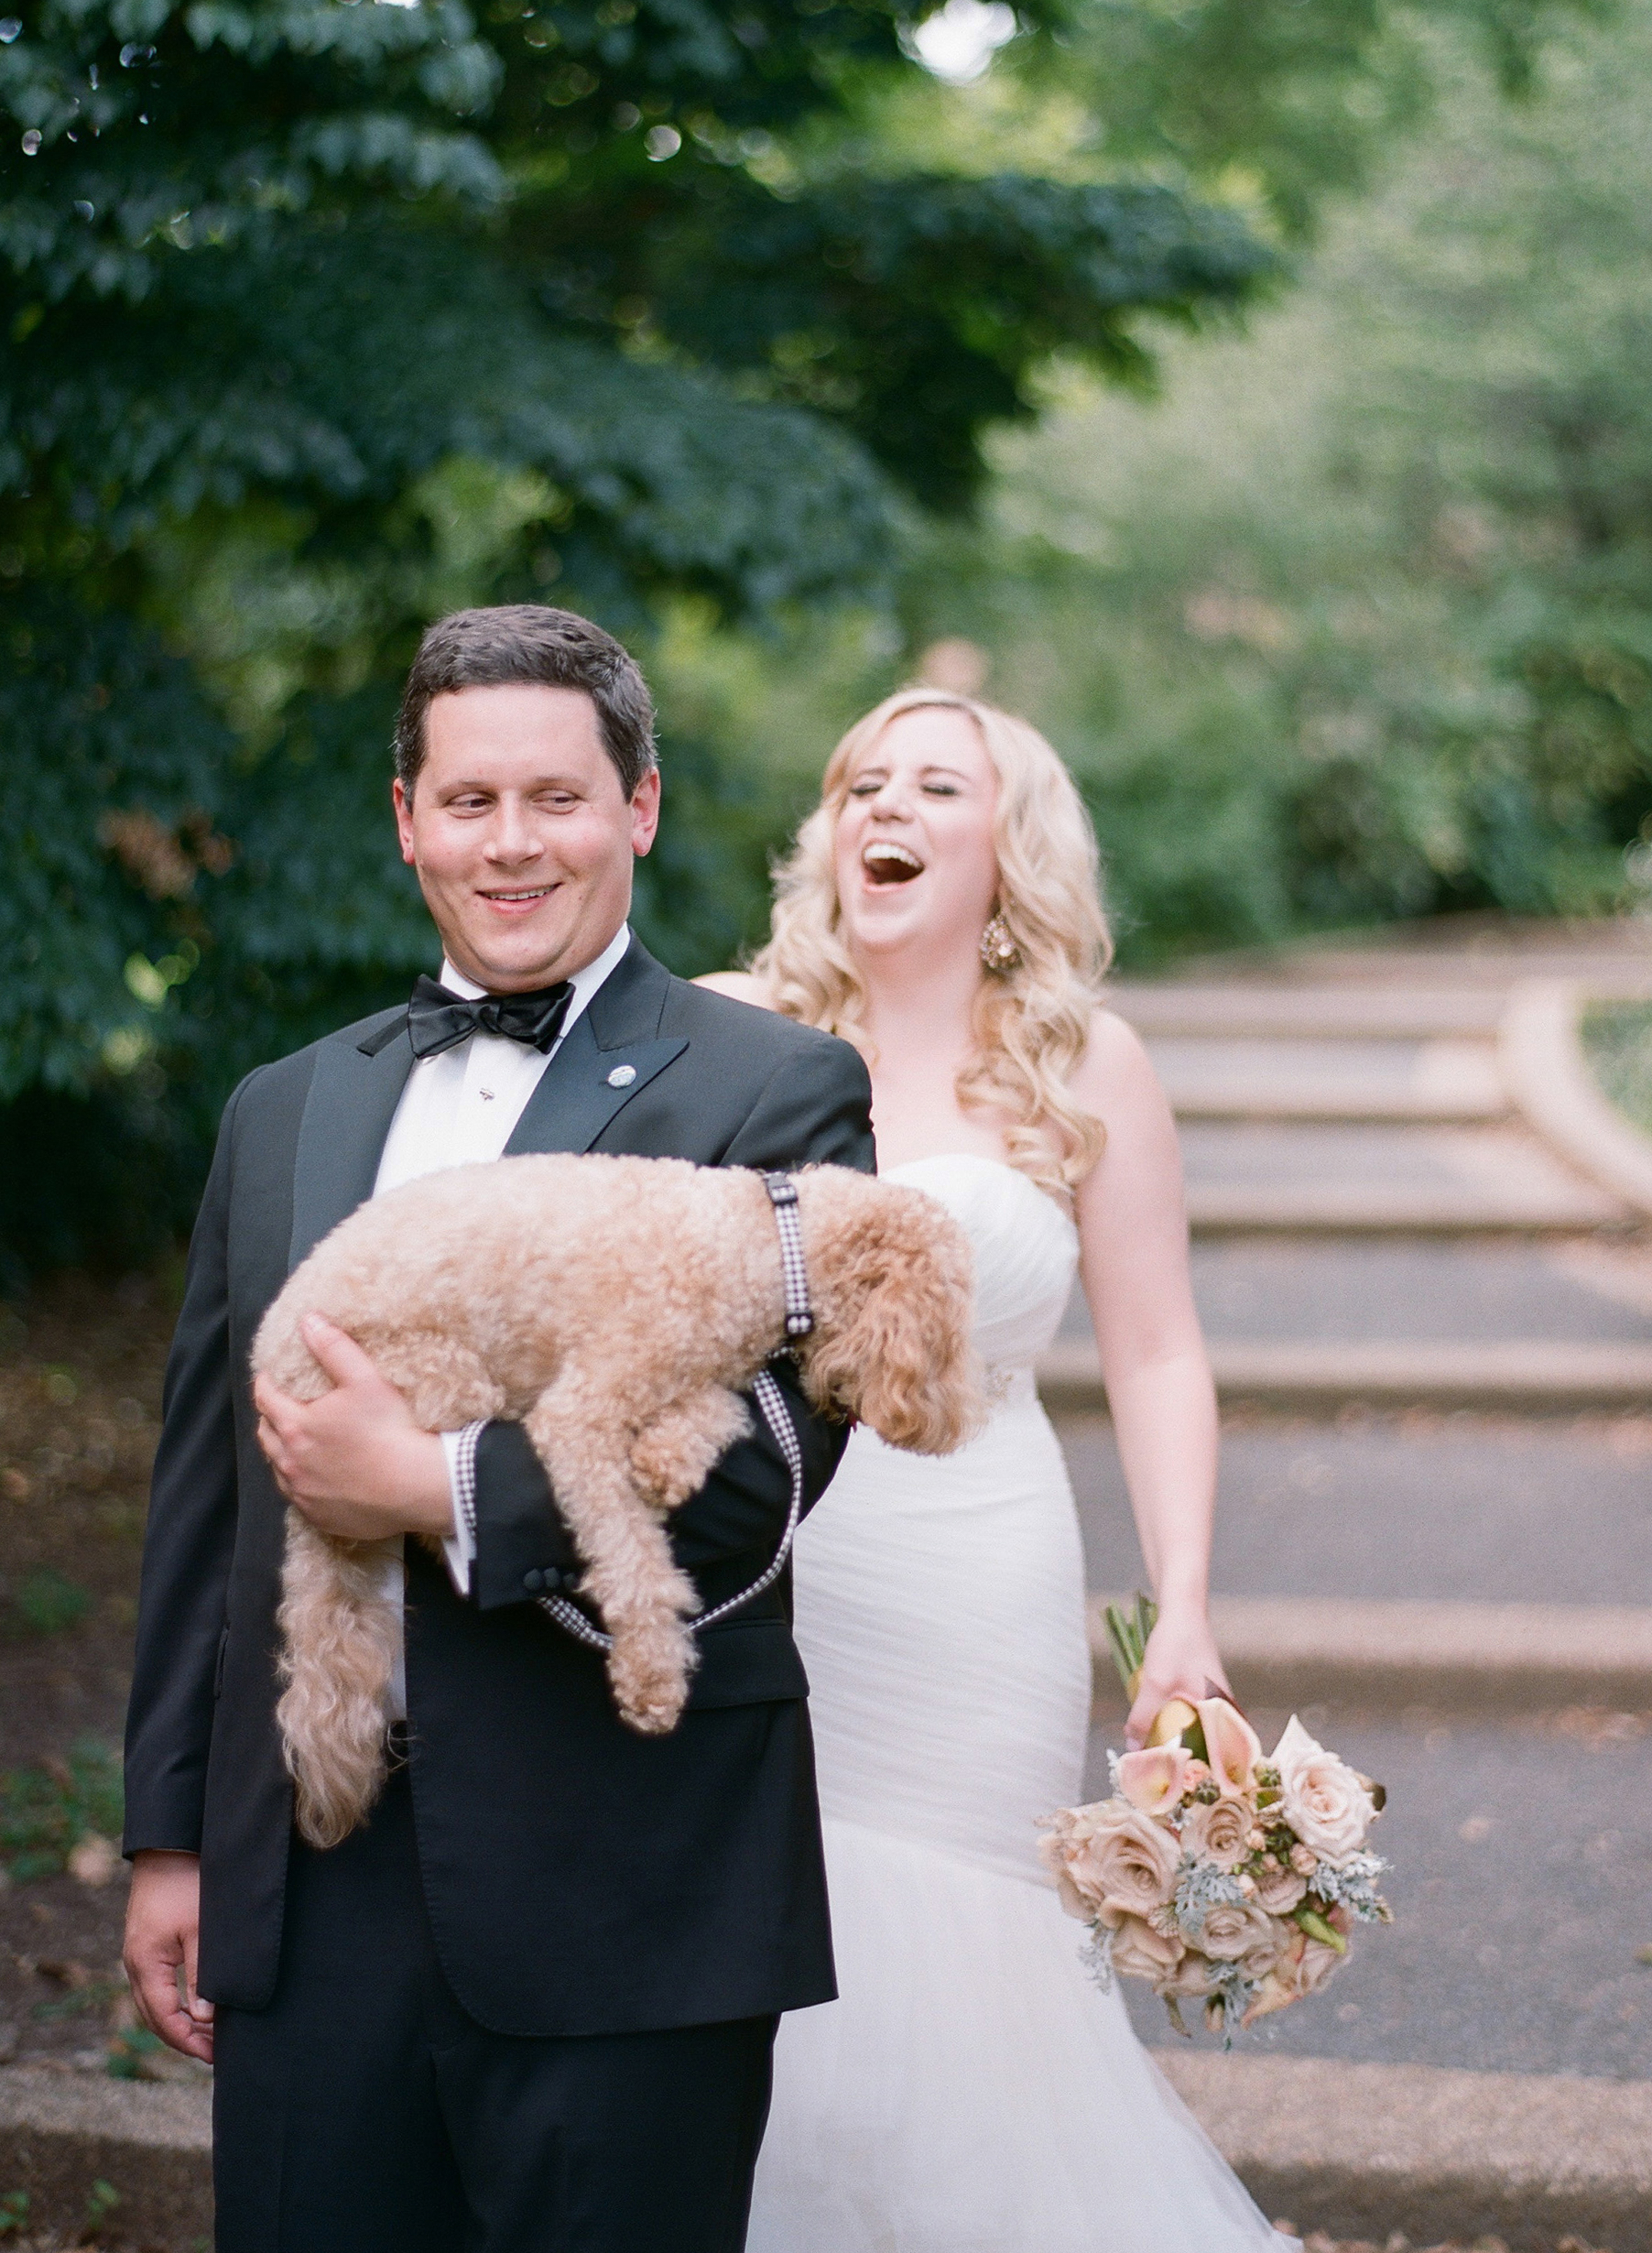 Sophisticated Cocktail Style Wedding, Bright Occasions Wedding Planning, Audra Wrisley Photography